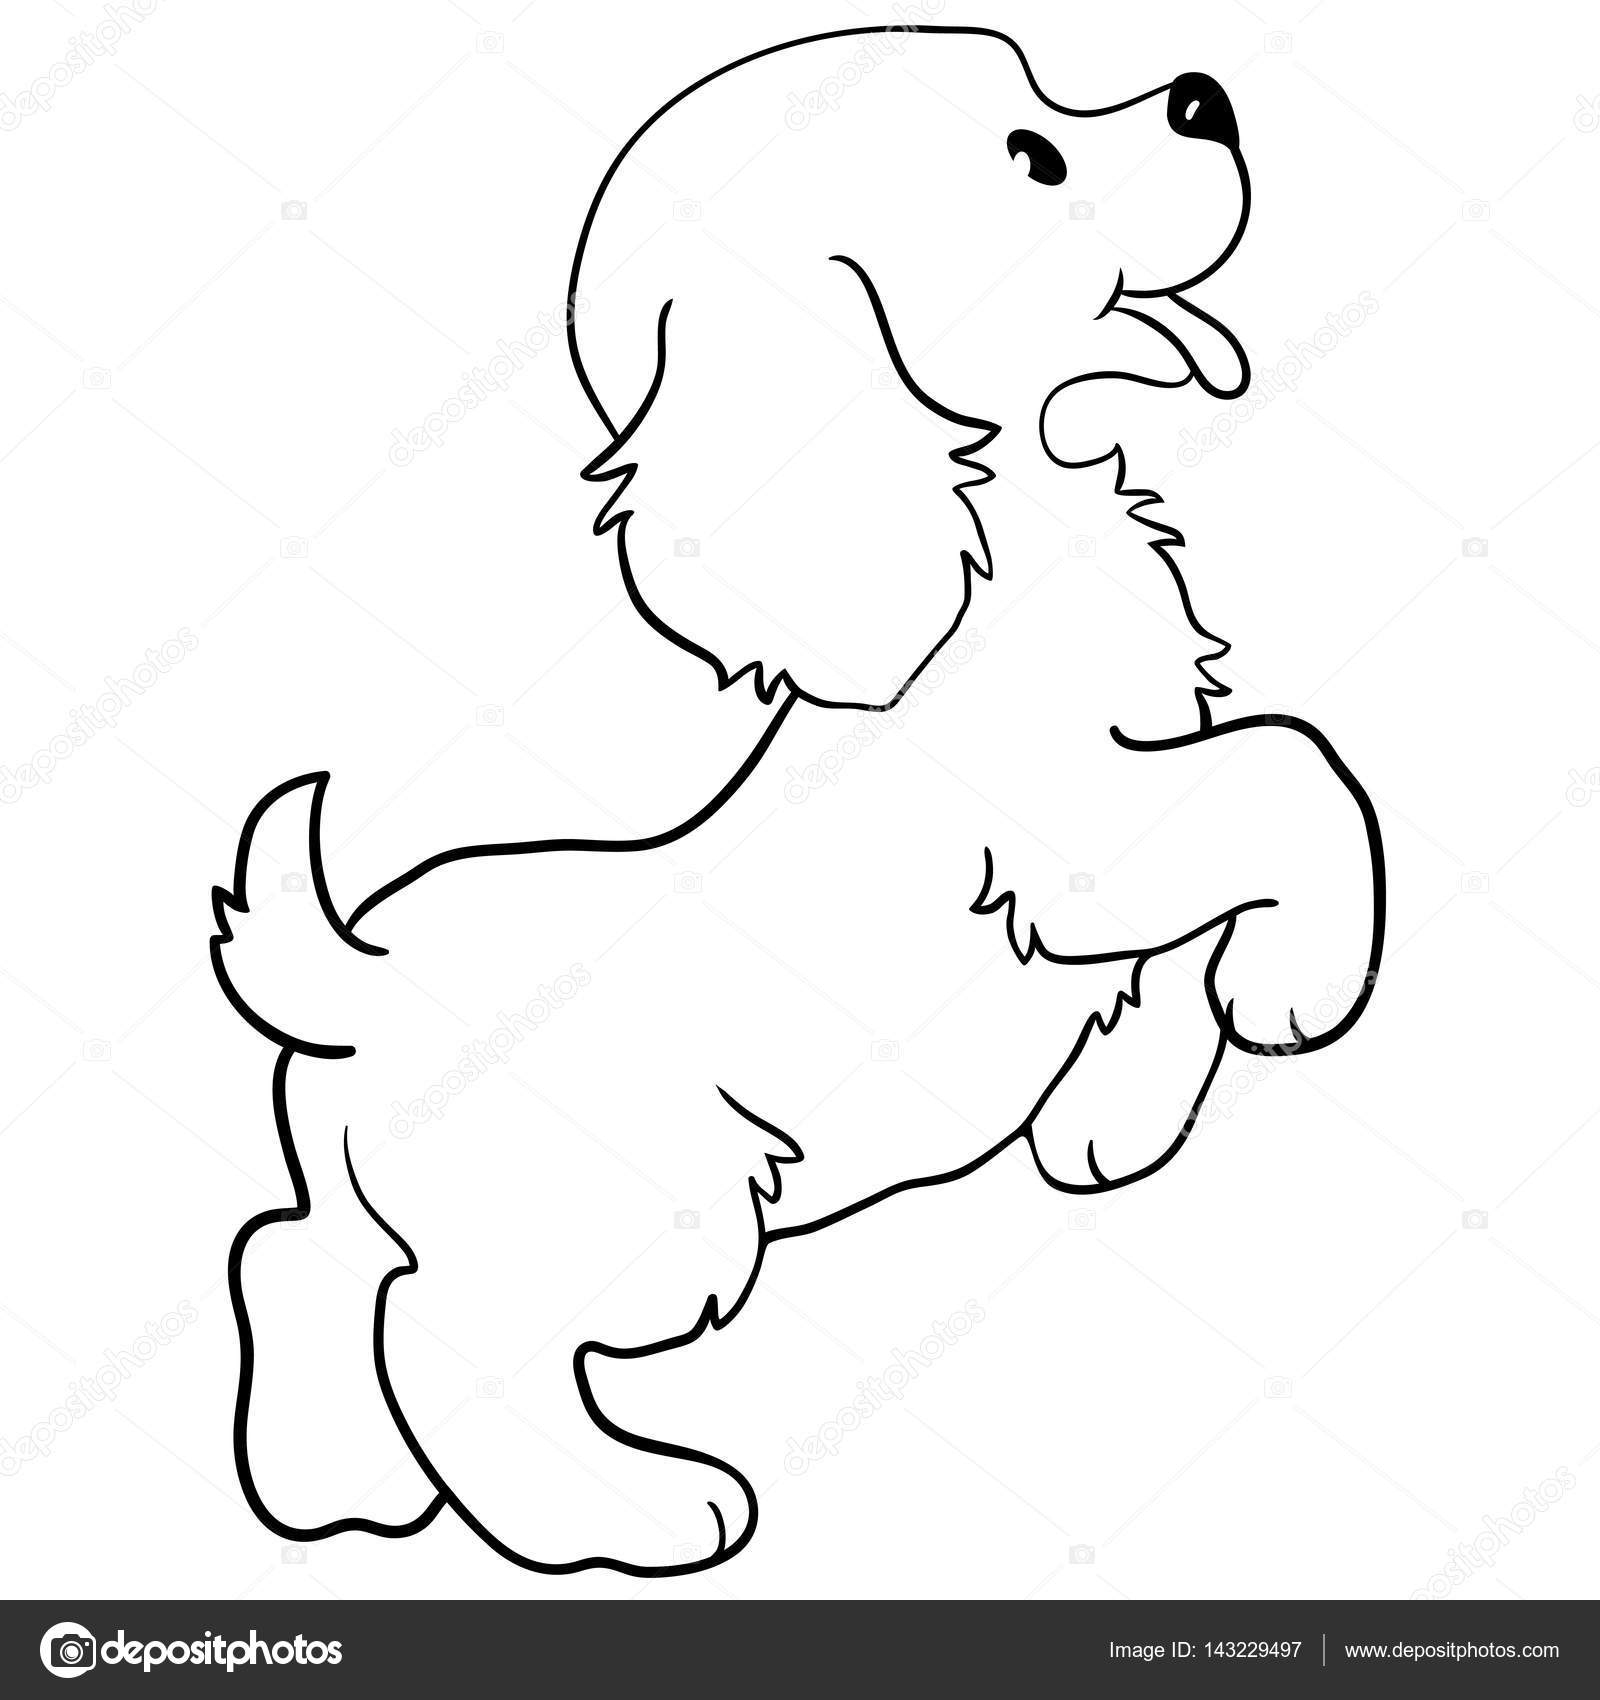 Dog Contour Cute Vector Dog Coloring Isolated On White